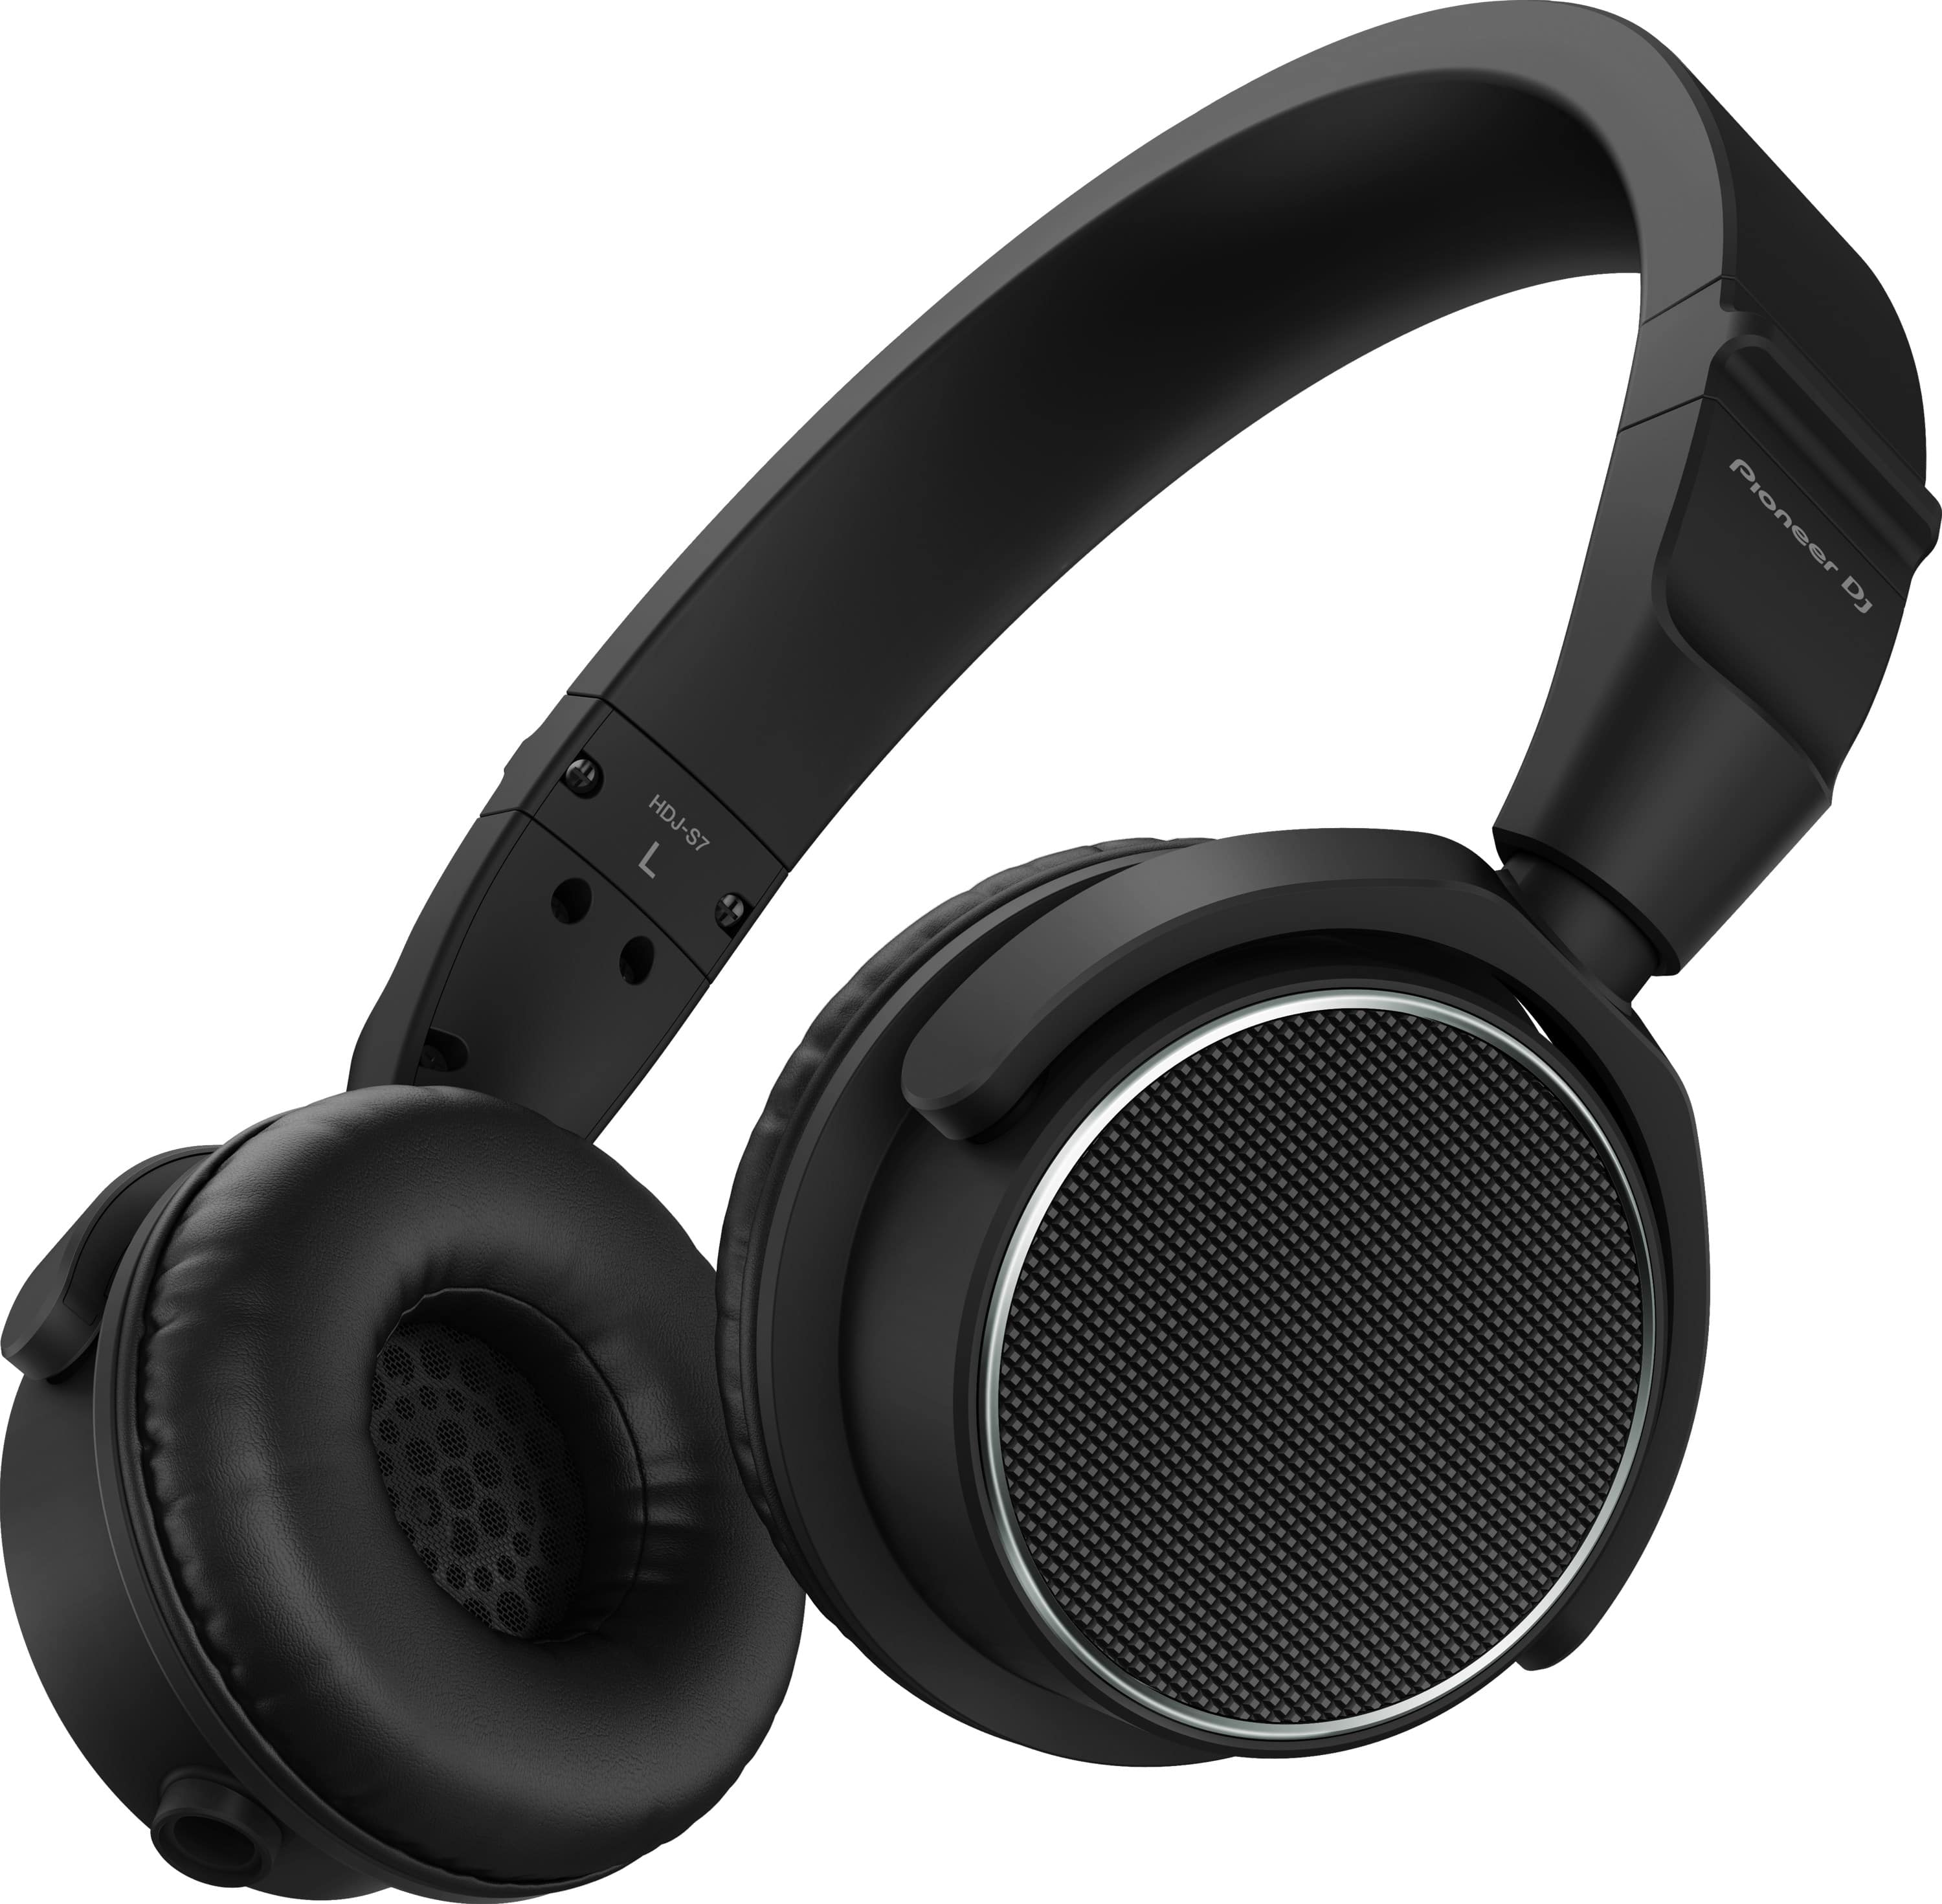 cef2ffae114 Following the launch of the HDJ-X10, HDJ-X7 and HDJ-X5 professional over-ear  DJ headphone models in autumn 2017, Pioneer are releasing the HDJ-S7 ...